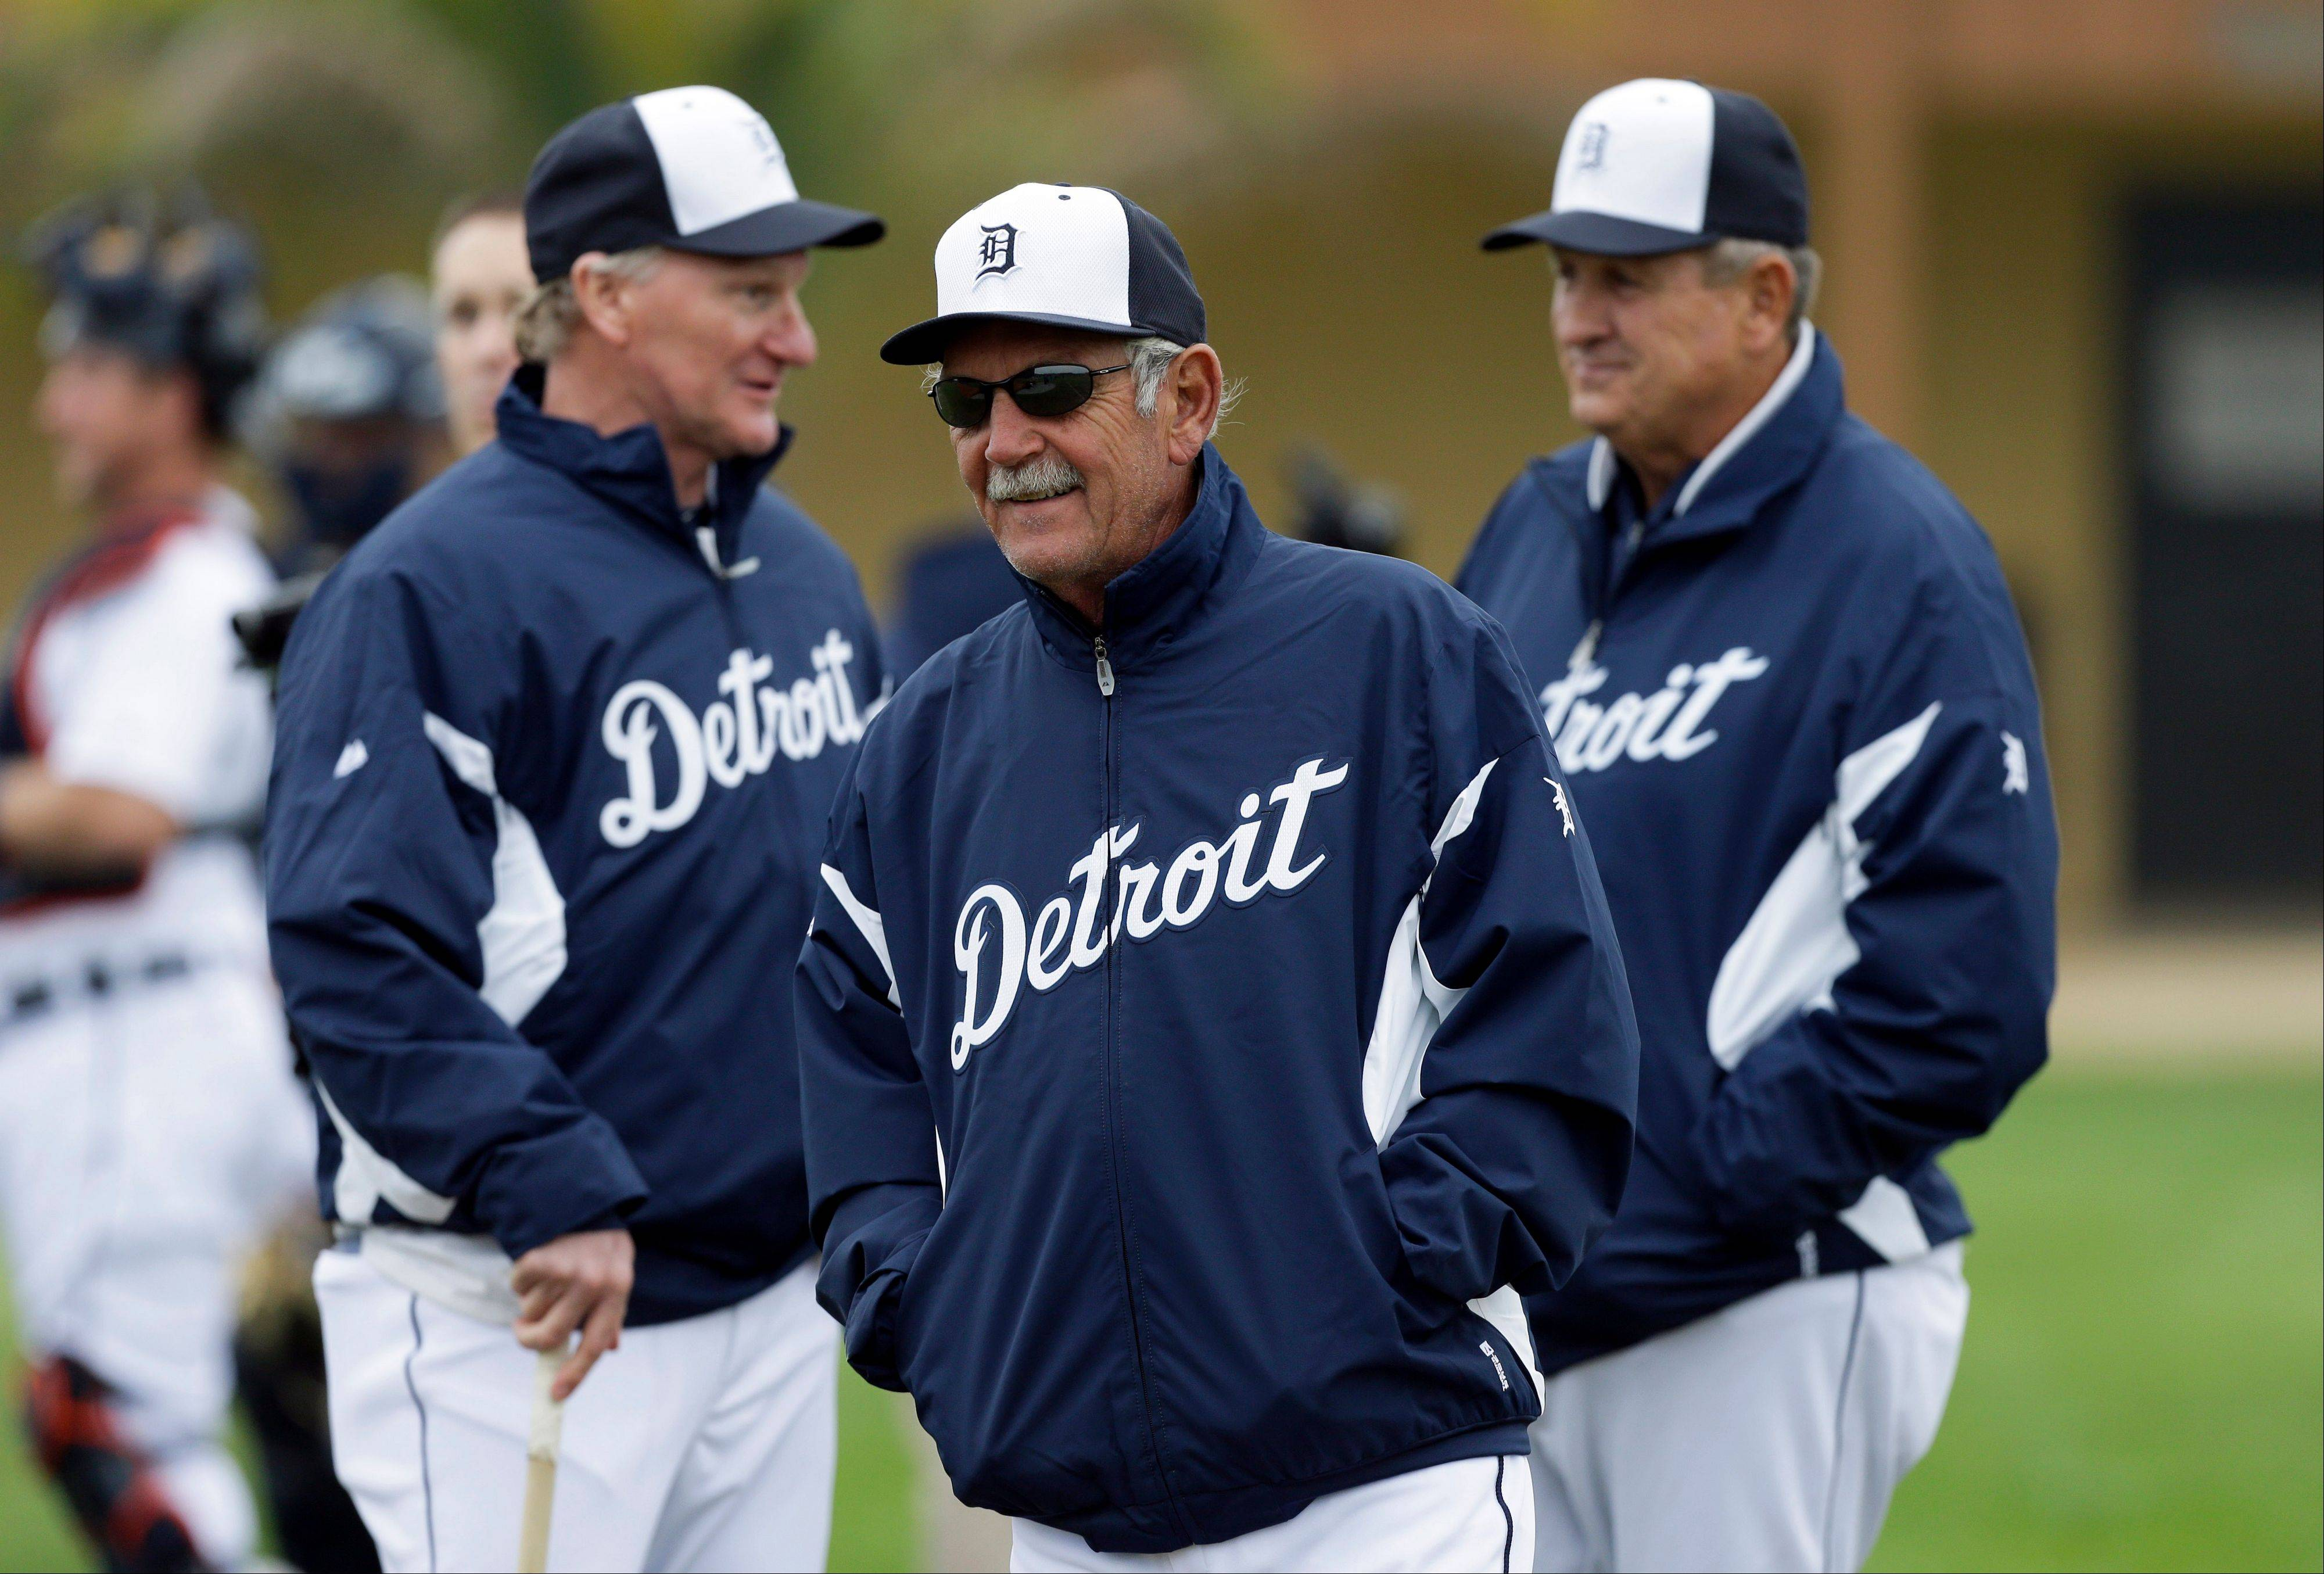 Associated Press Ever the pessimist, Detroit manager Jim Leyland, center, likes his team but insists the Tigers can't take it easy with the improved talent on the Indians, White Sox and Royals.